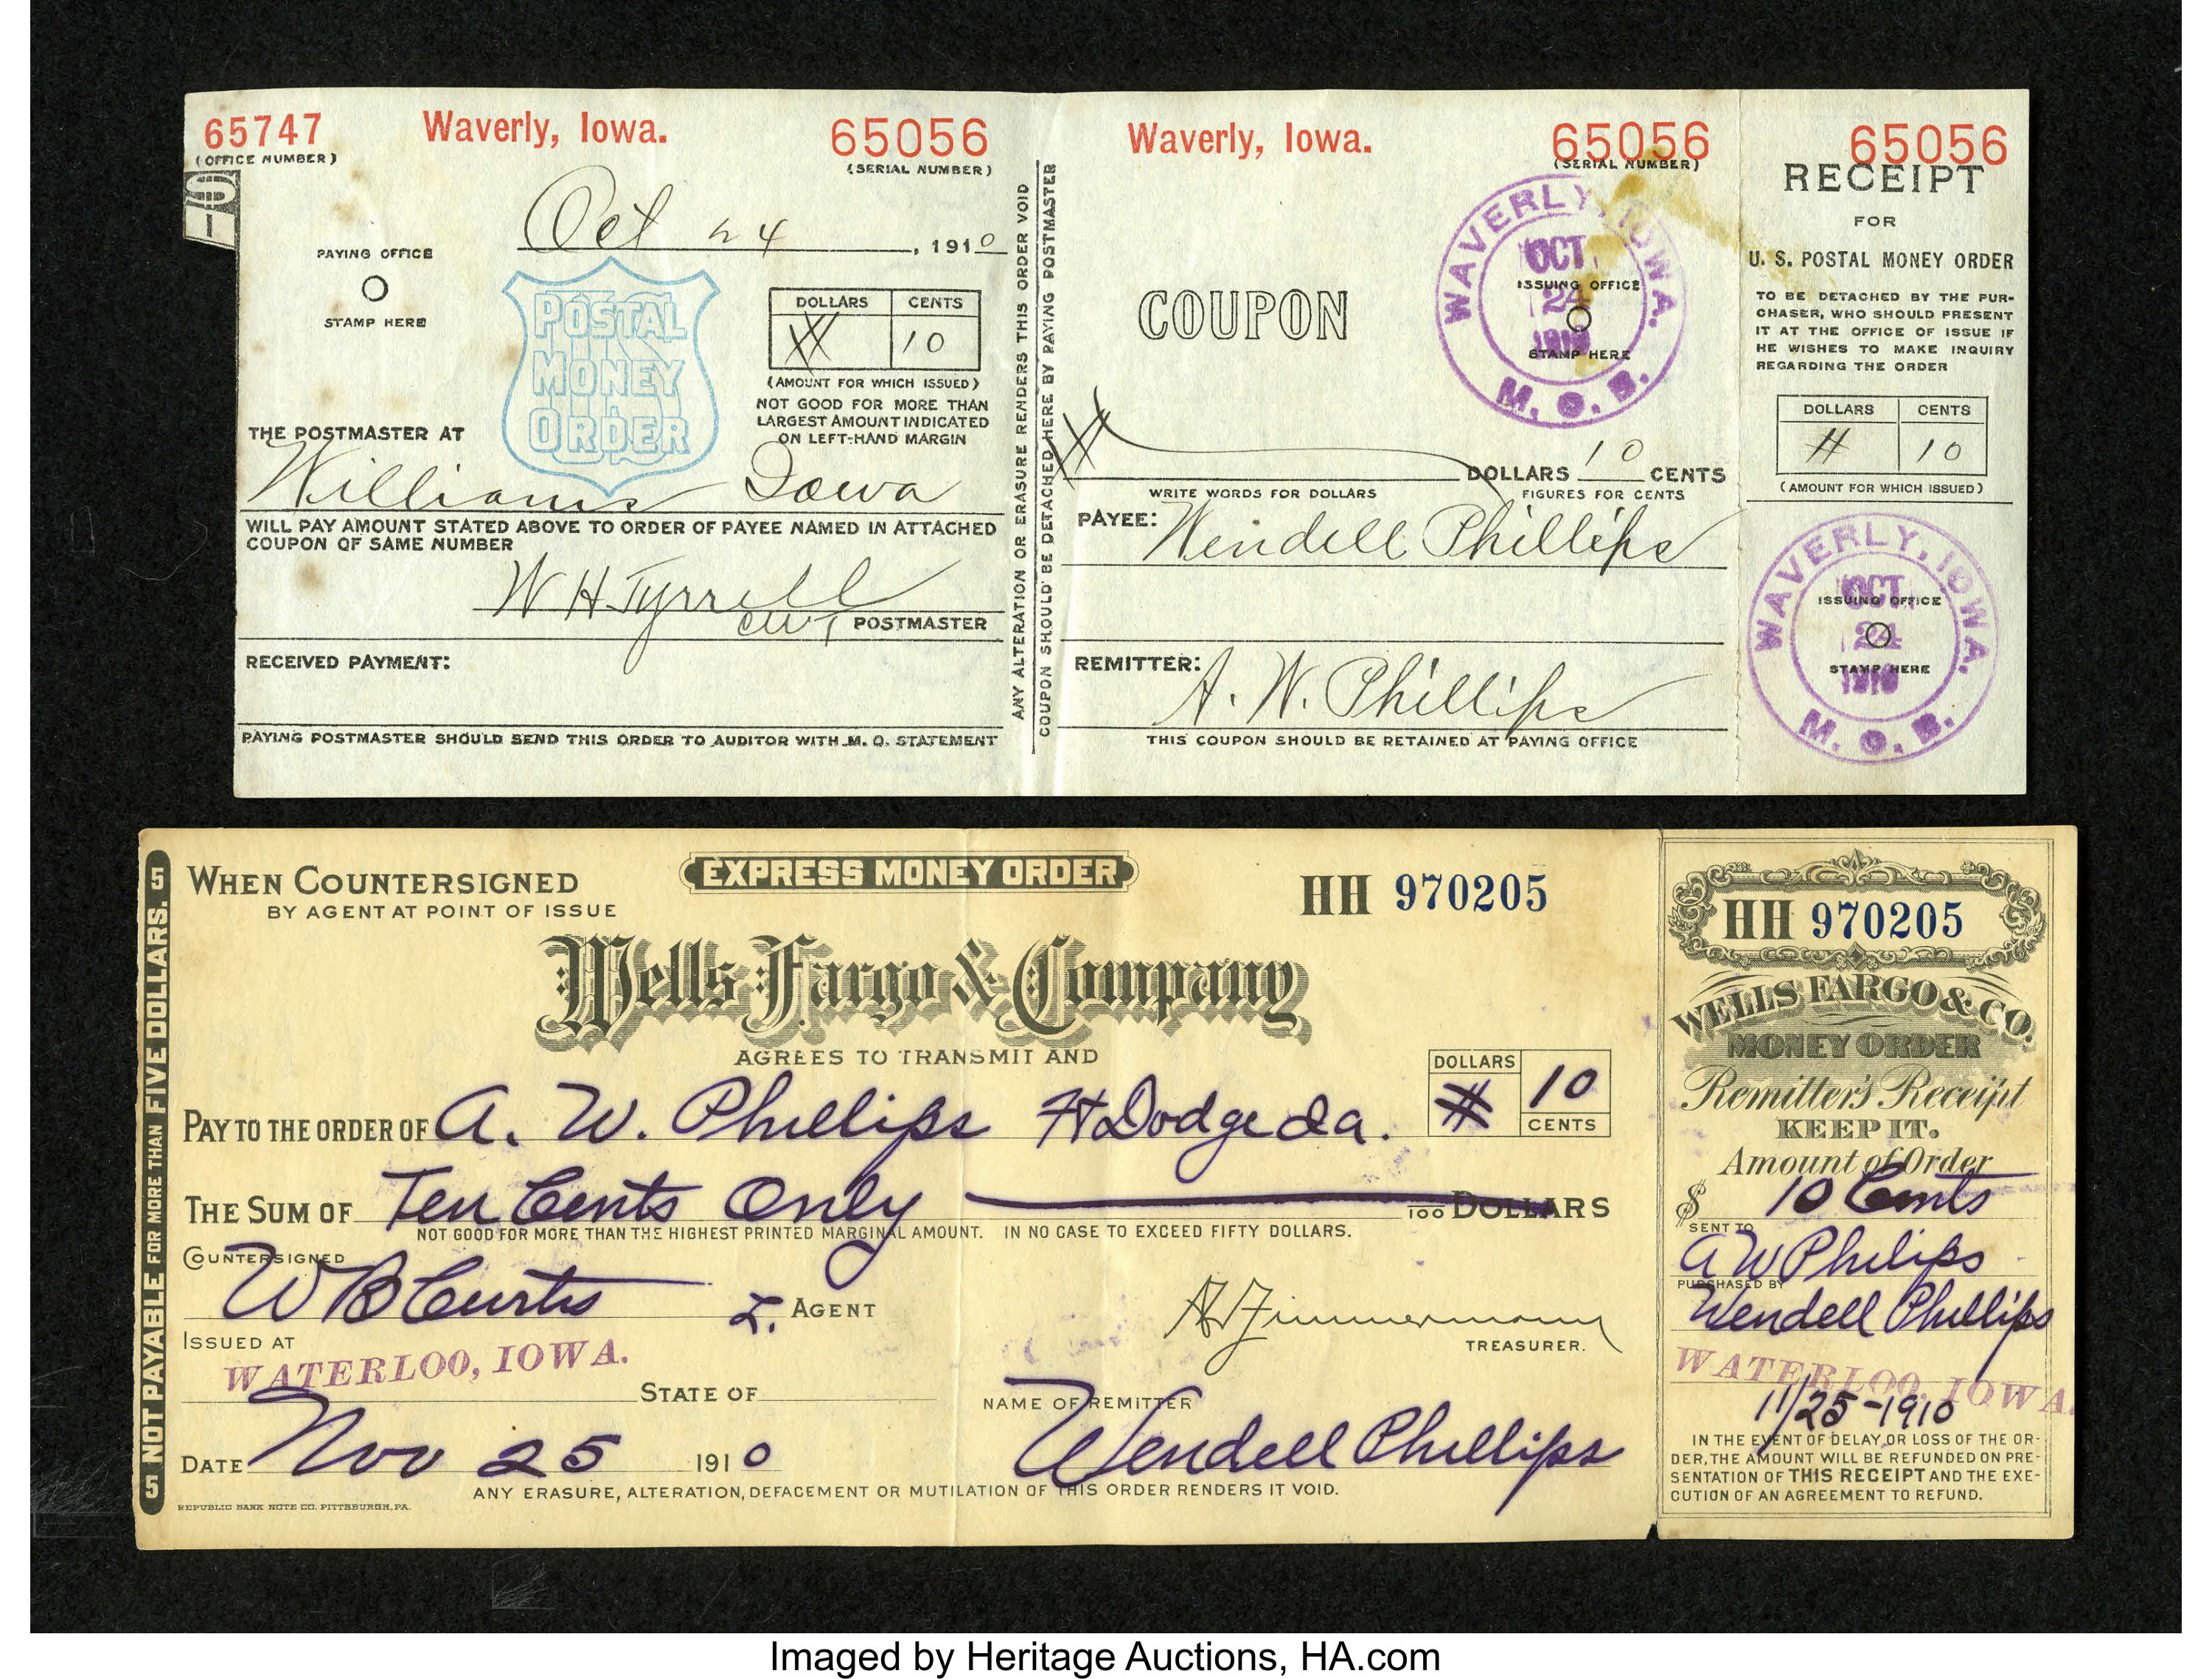 10 Money Order Collection Collector Arthur Phillips Set About To Lot 21046 Heritage Auctions